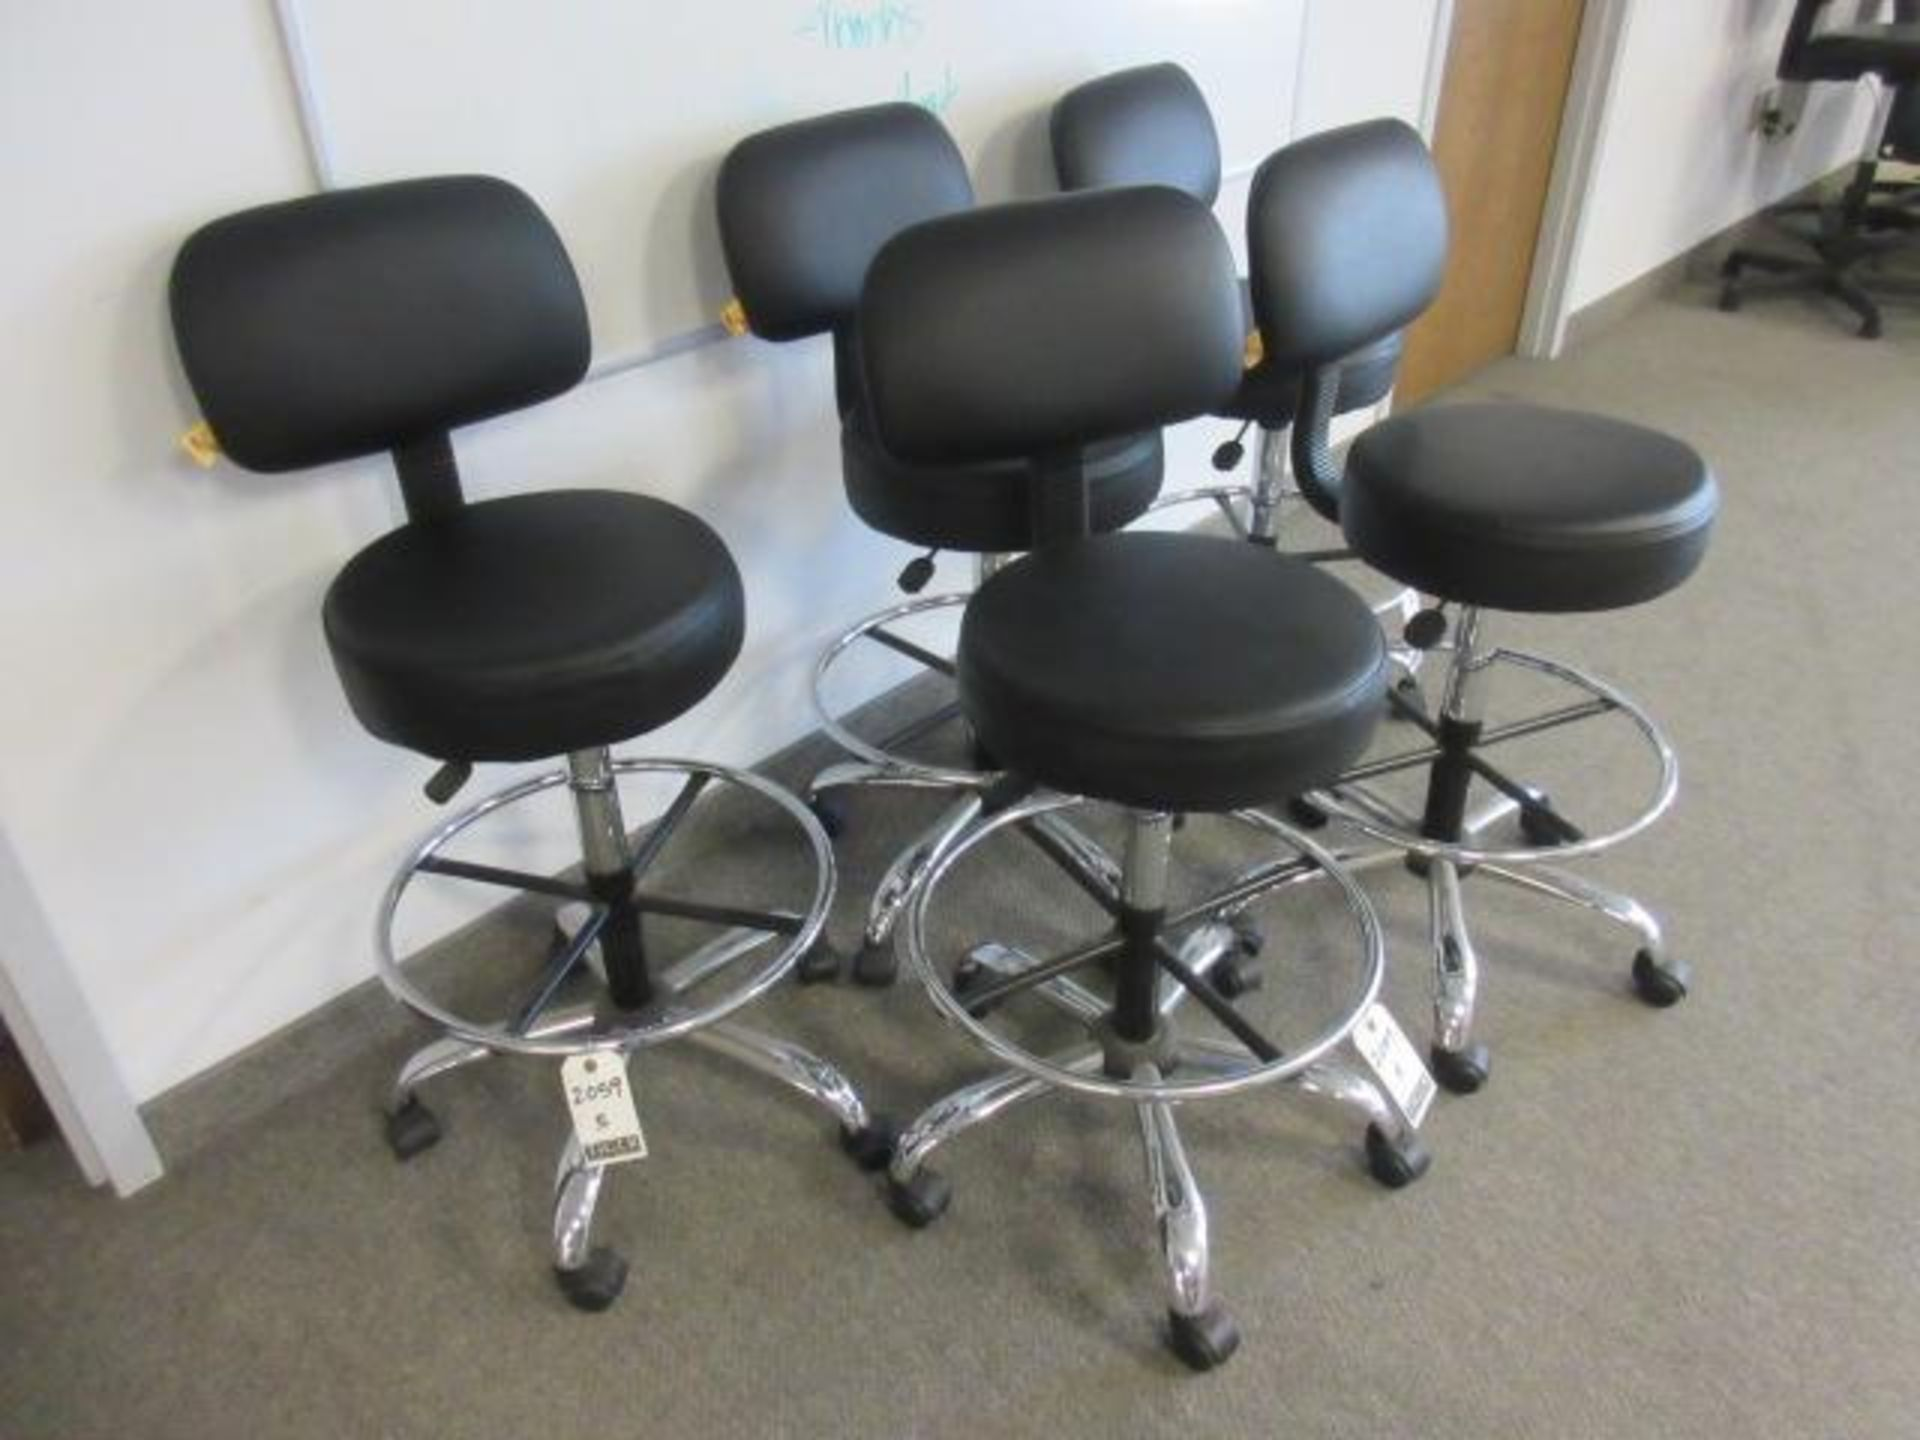 Black Lab Chairs-Swivel Base - Image 3 of 4